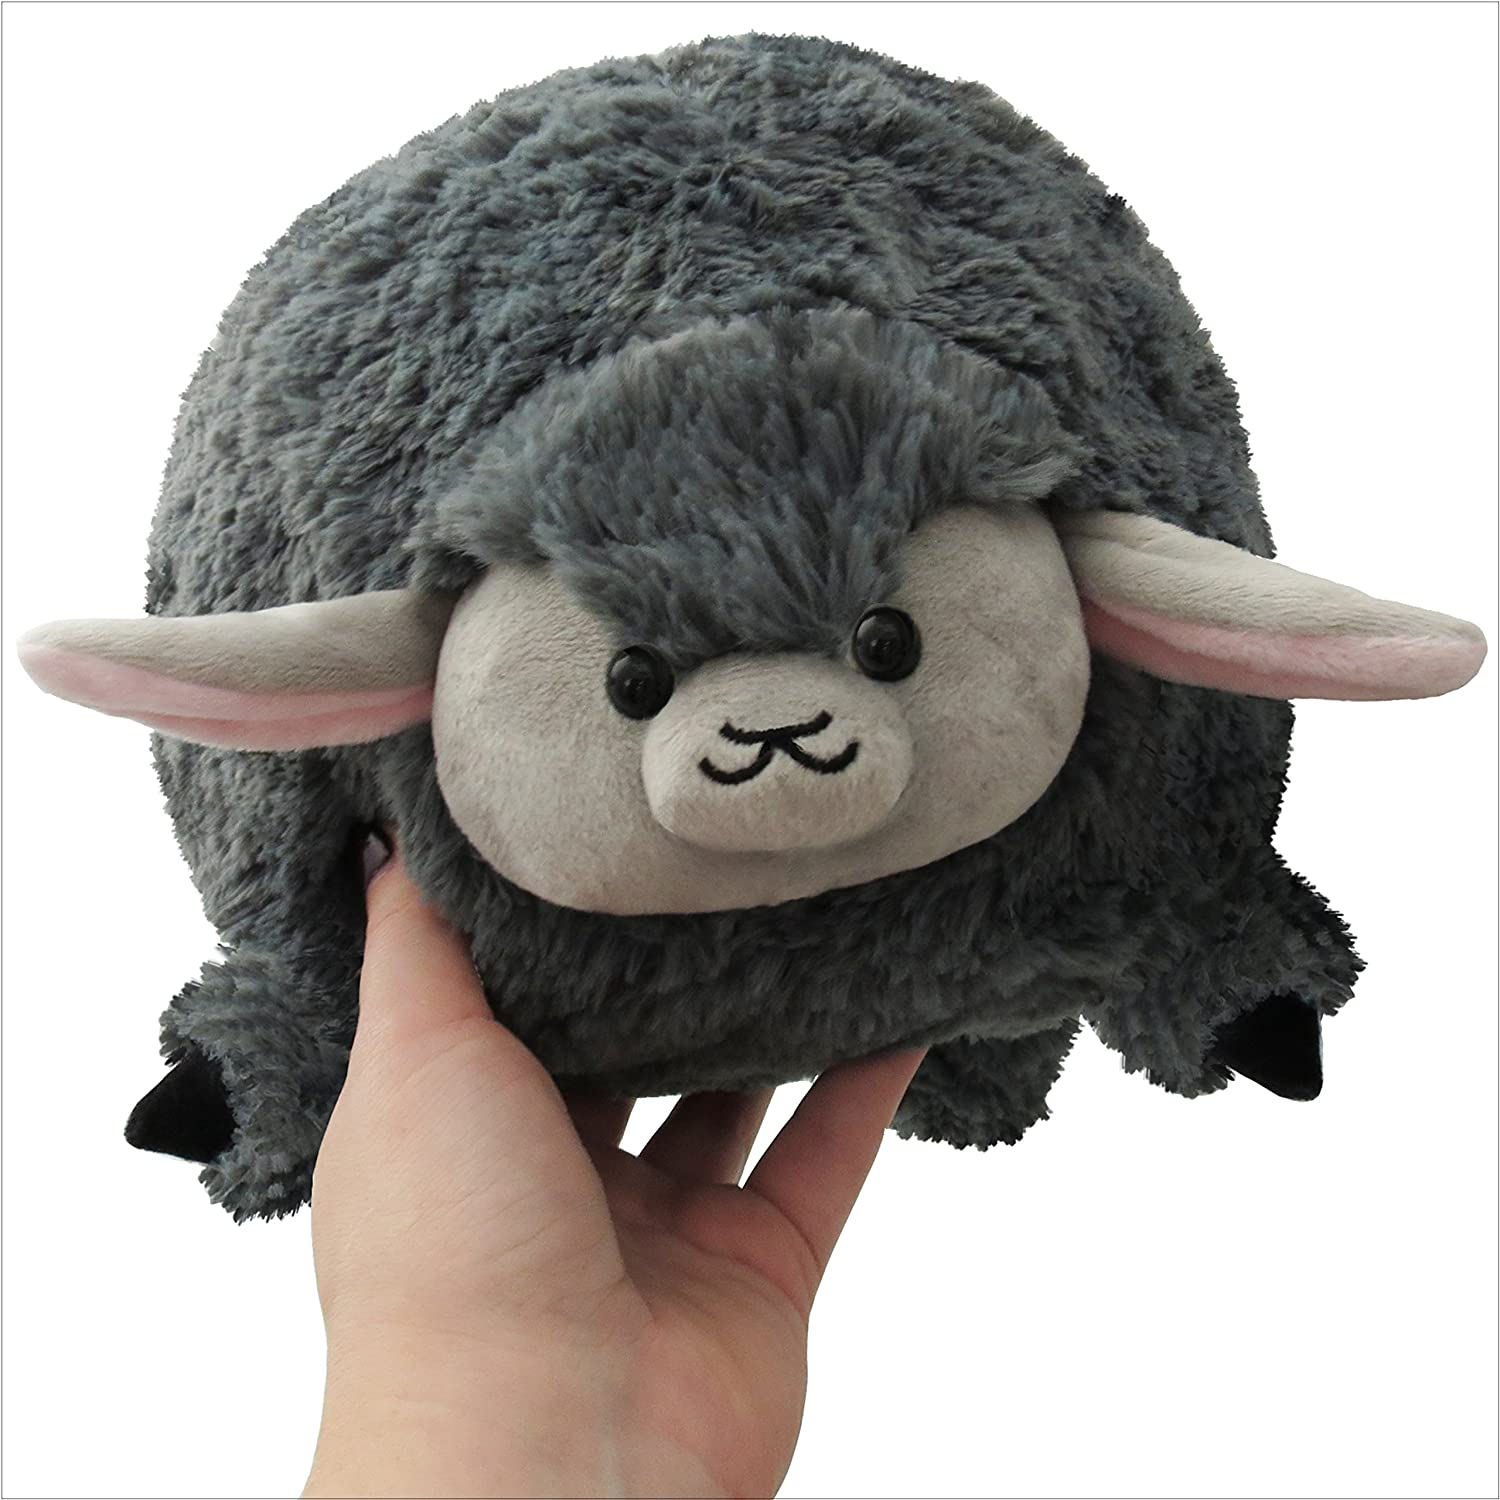 Amazon Com Squishable Limited Mini Black Sheep Plush 7 Toys